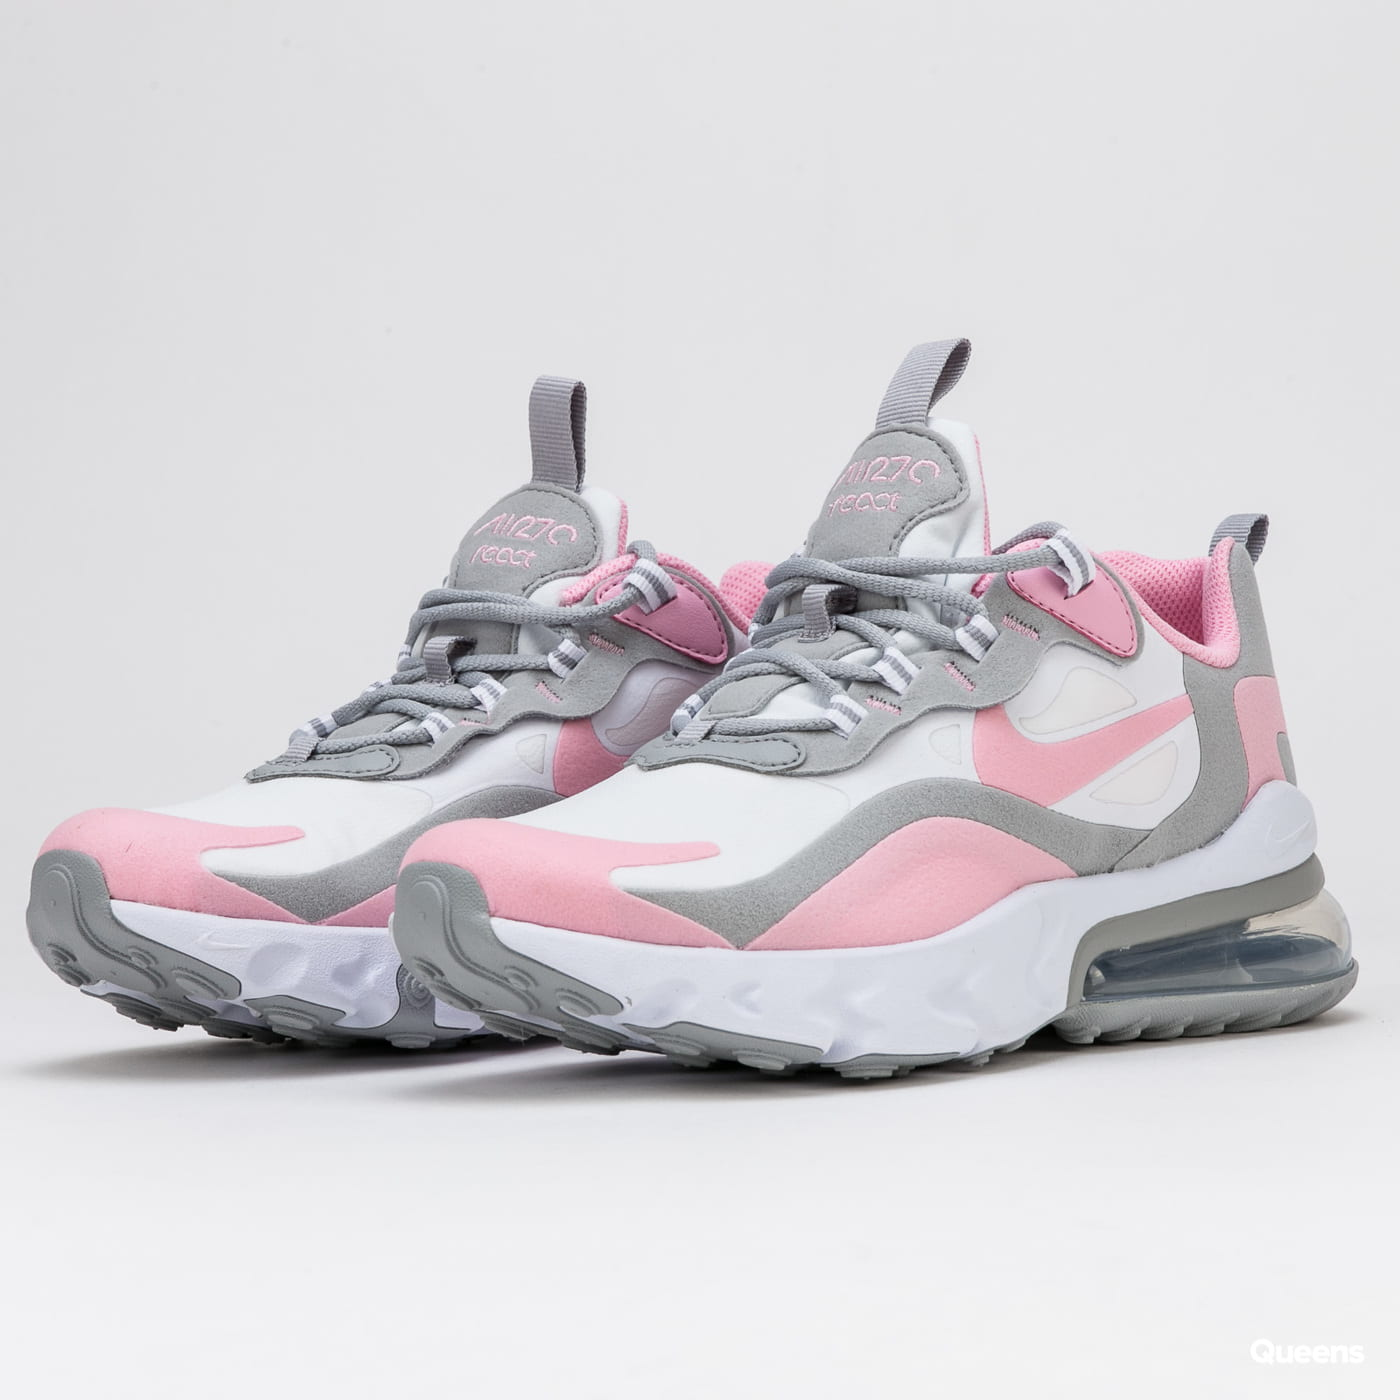 Nike Air Max 270 React Gs White Pink Lt Smoke Grey Bq0103